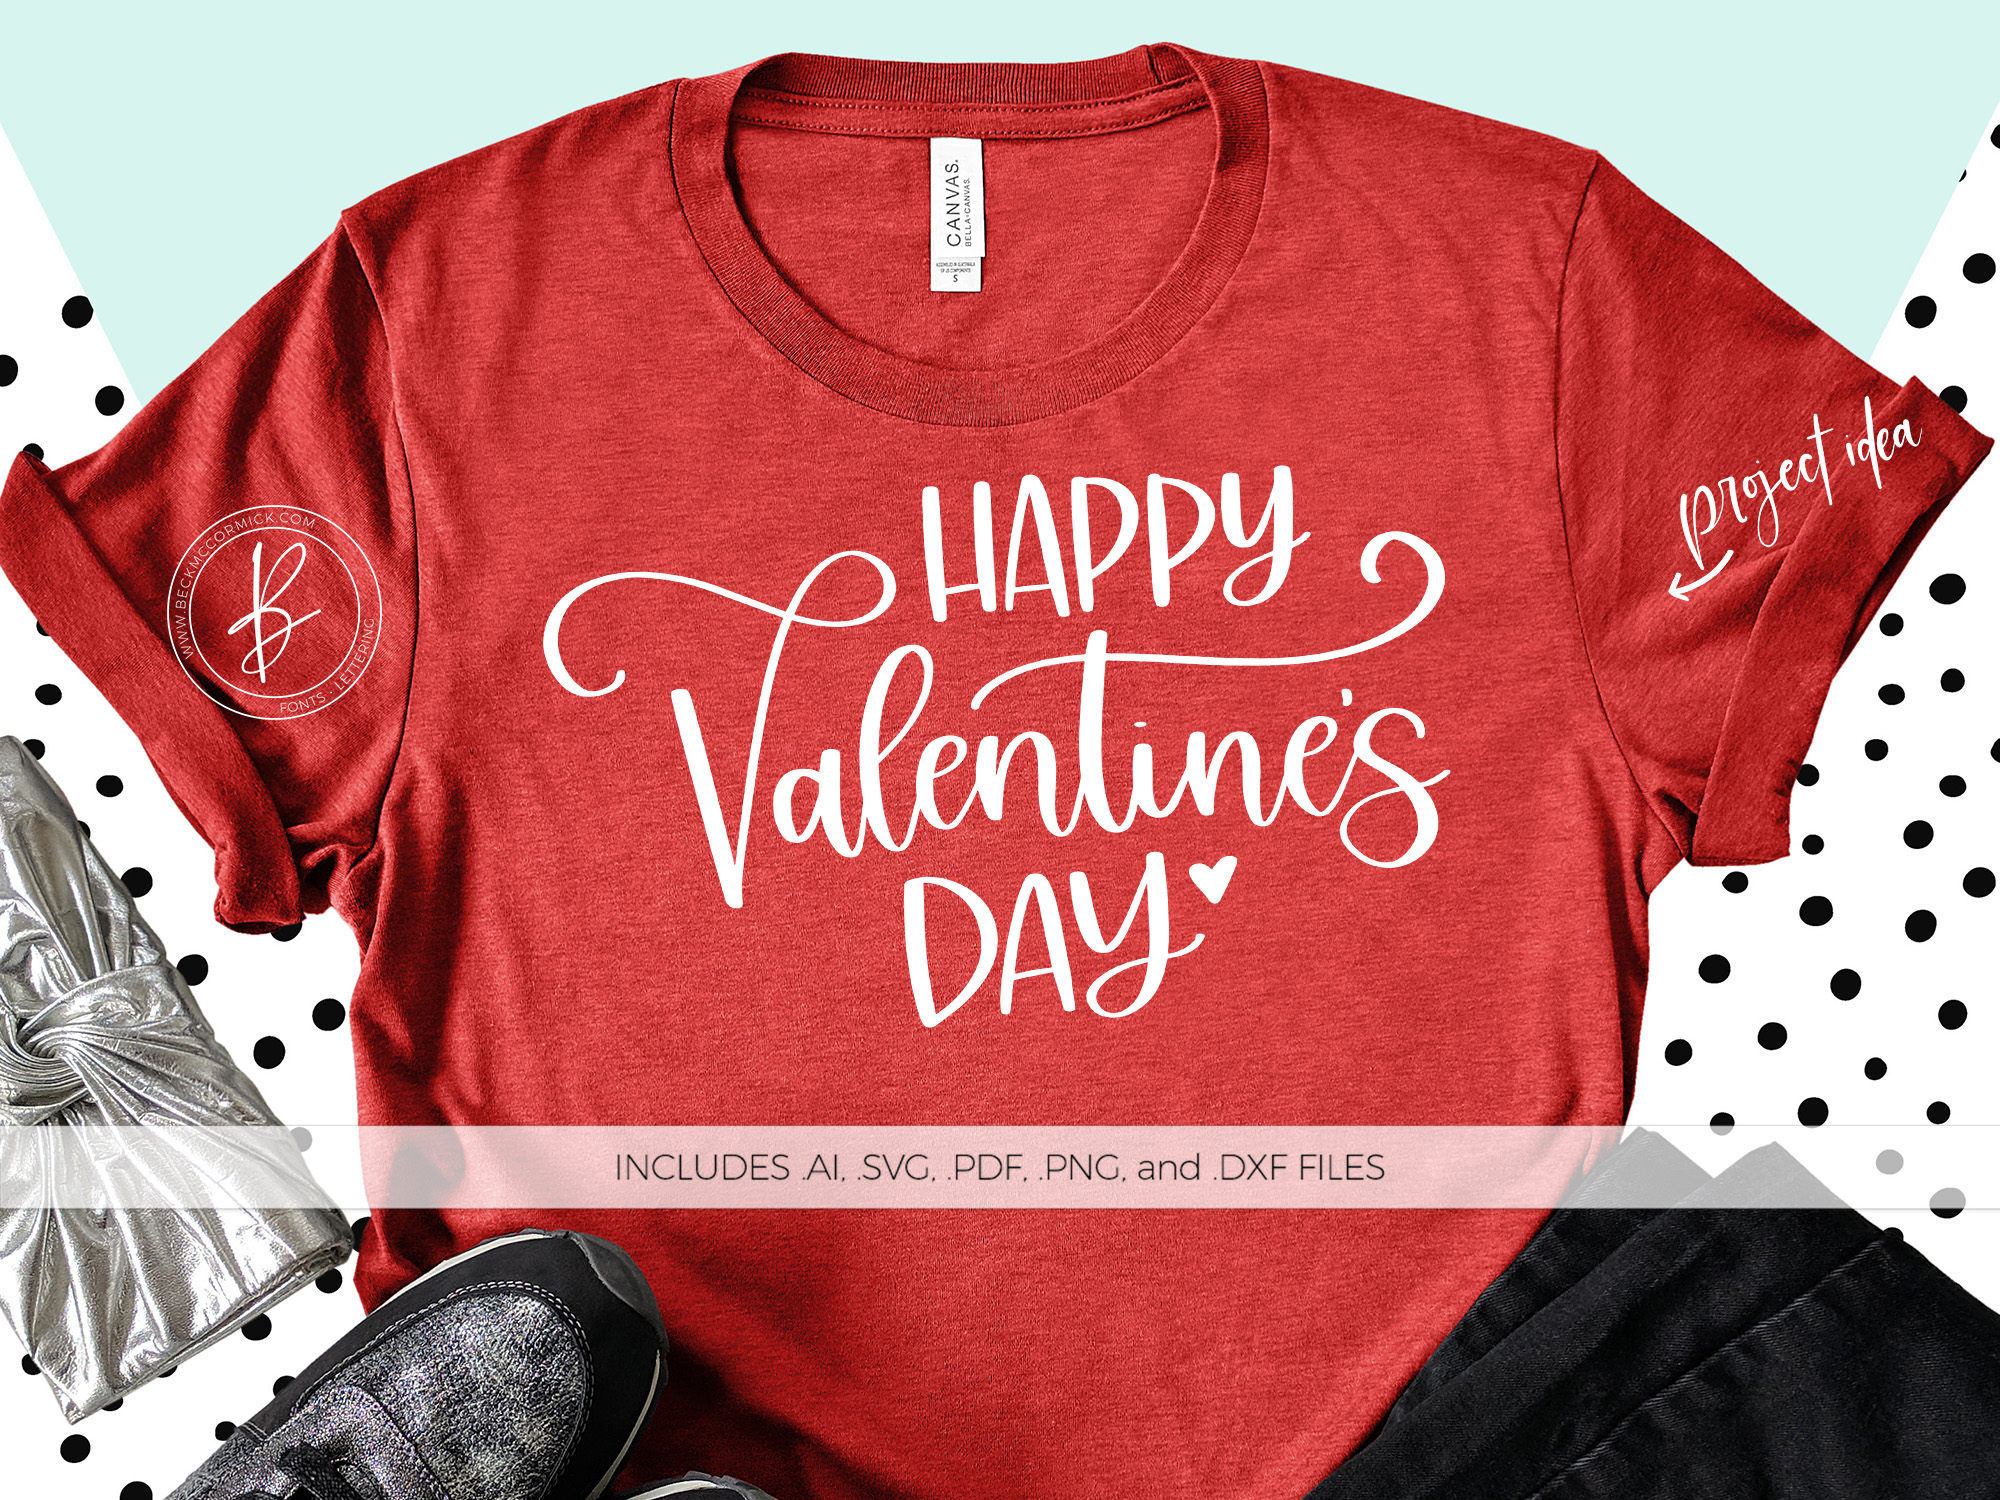 Download Free Happy Valentine S Day Graphic By Beckmccormick Creative Fabrica for Cricut Explore, Silhouette and other cutting machines.